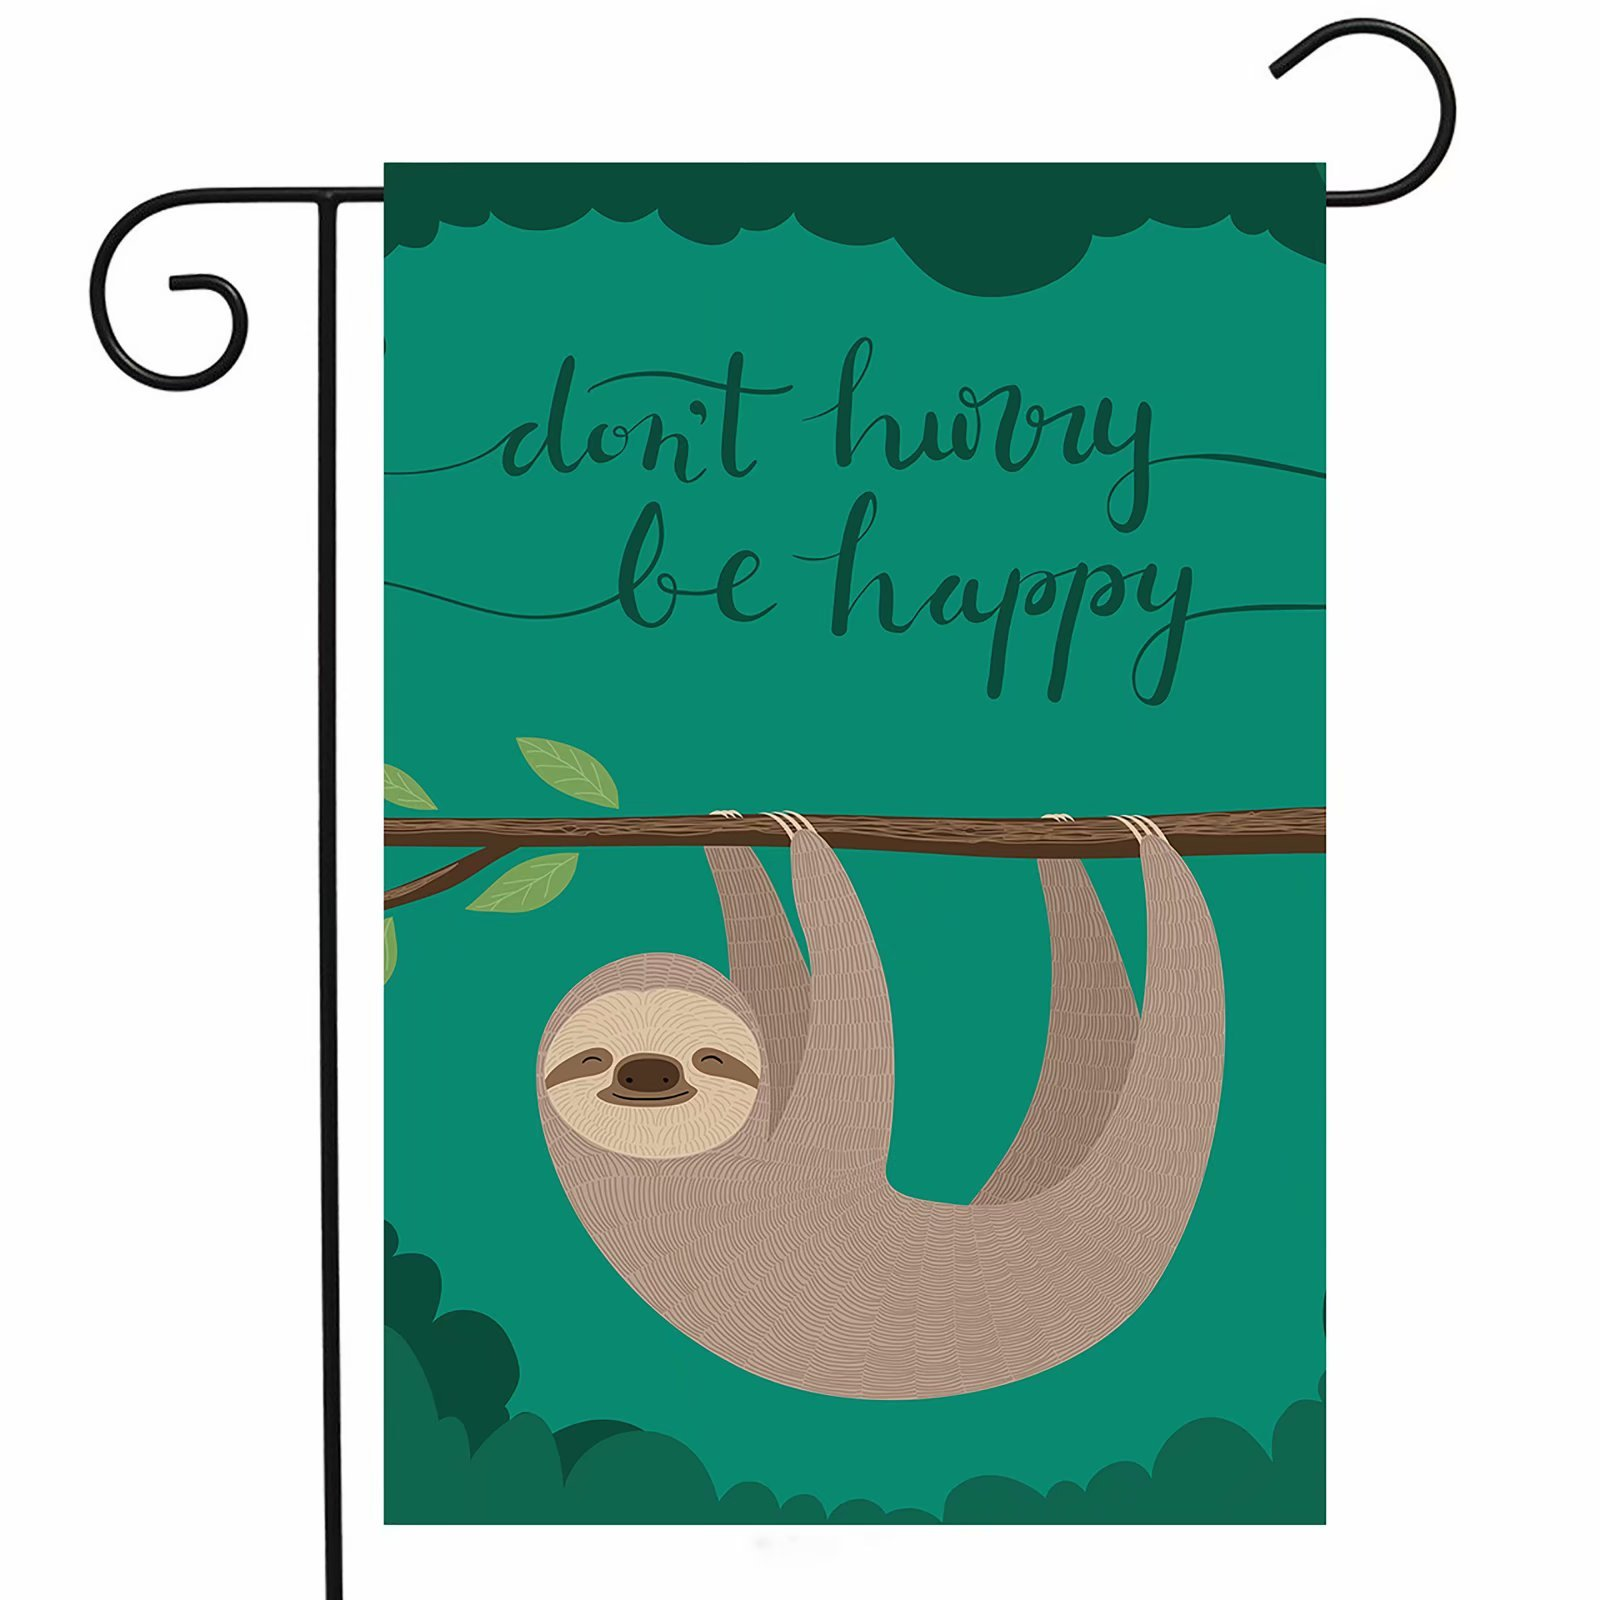 ShineSnow Funny Cute Lovely Animal Sloth Garden Yard Flag 12''x 18'' Double Sided, Wildlife Tree Brunch Don't Hurry Be Happy Polyester Welcome House Flag Banners for Patio Lawn Outdoor Home Decor by ShineSnow (Image #1)